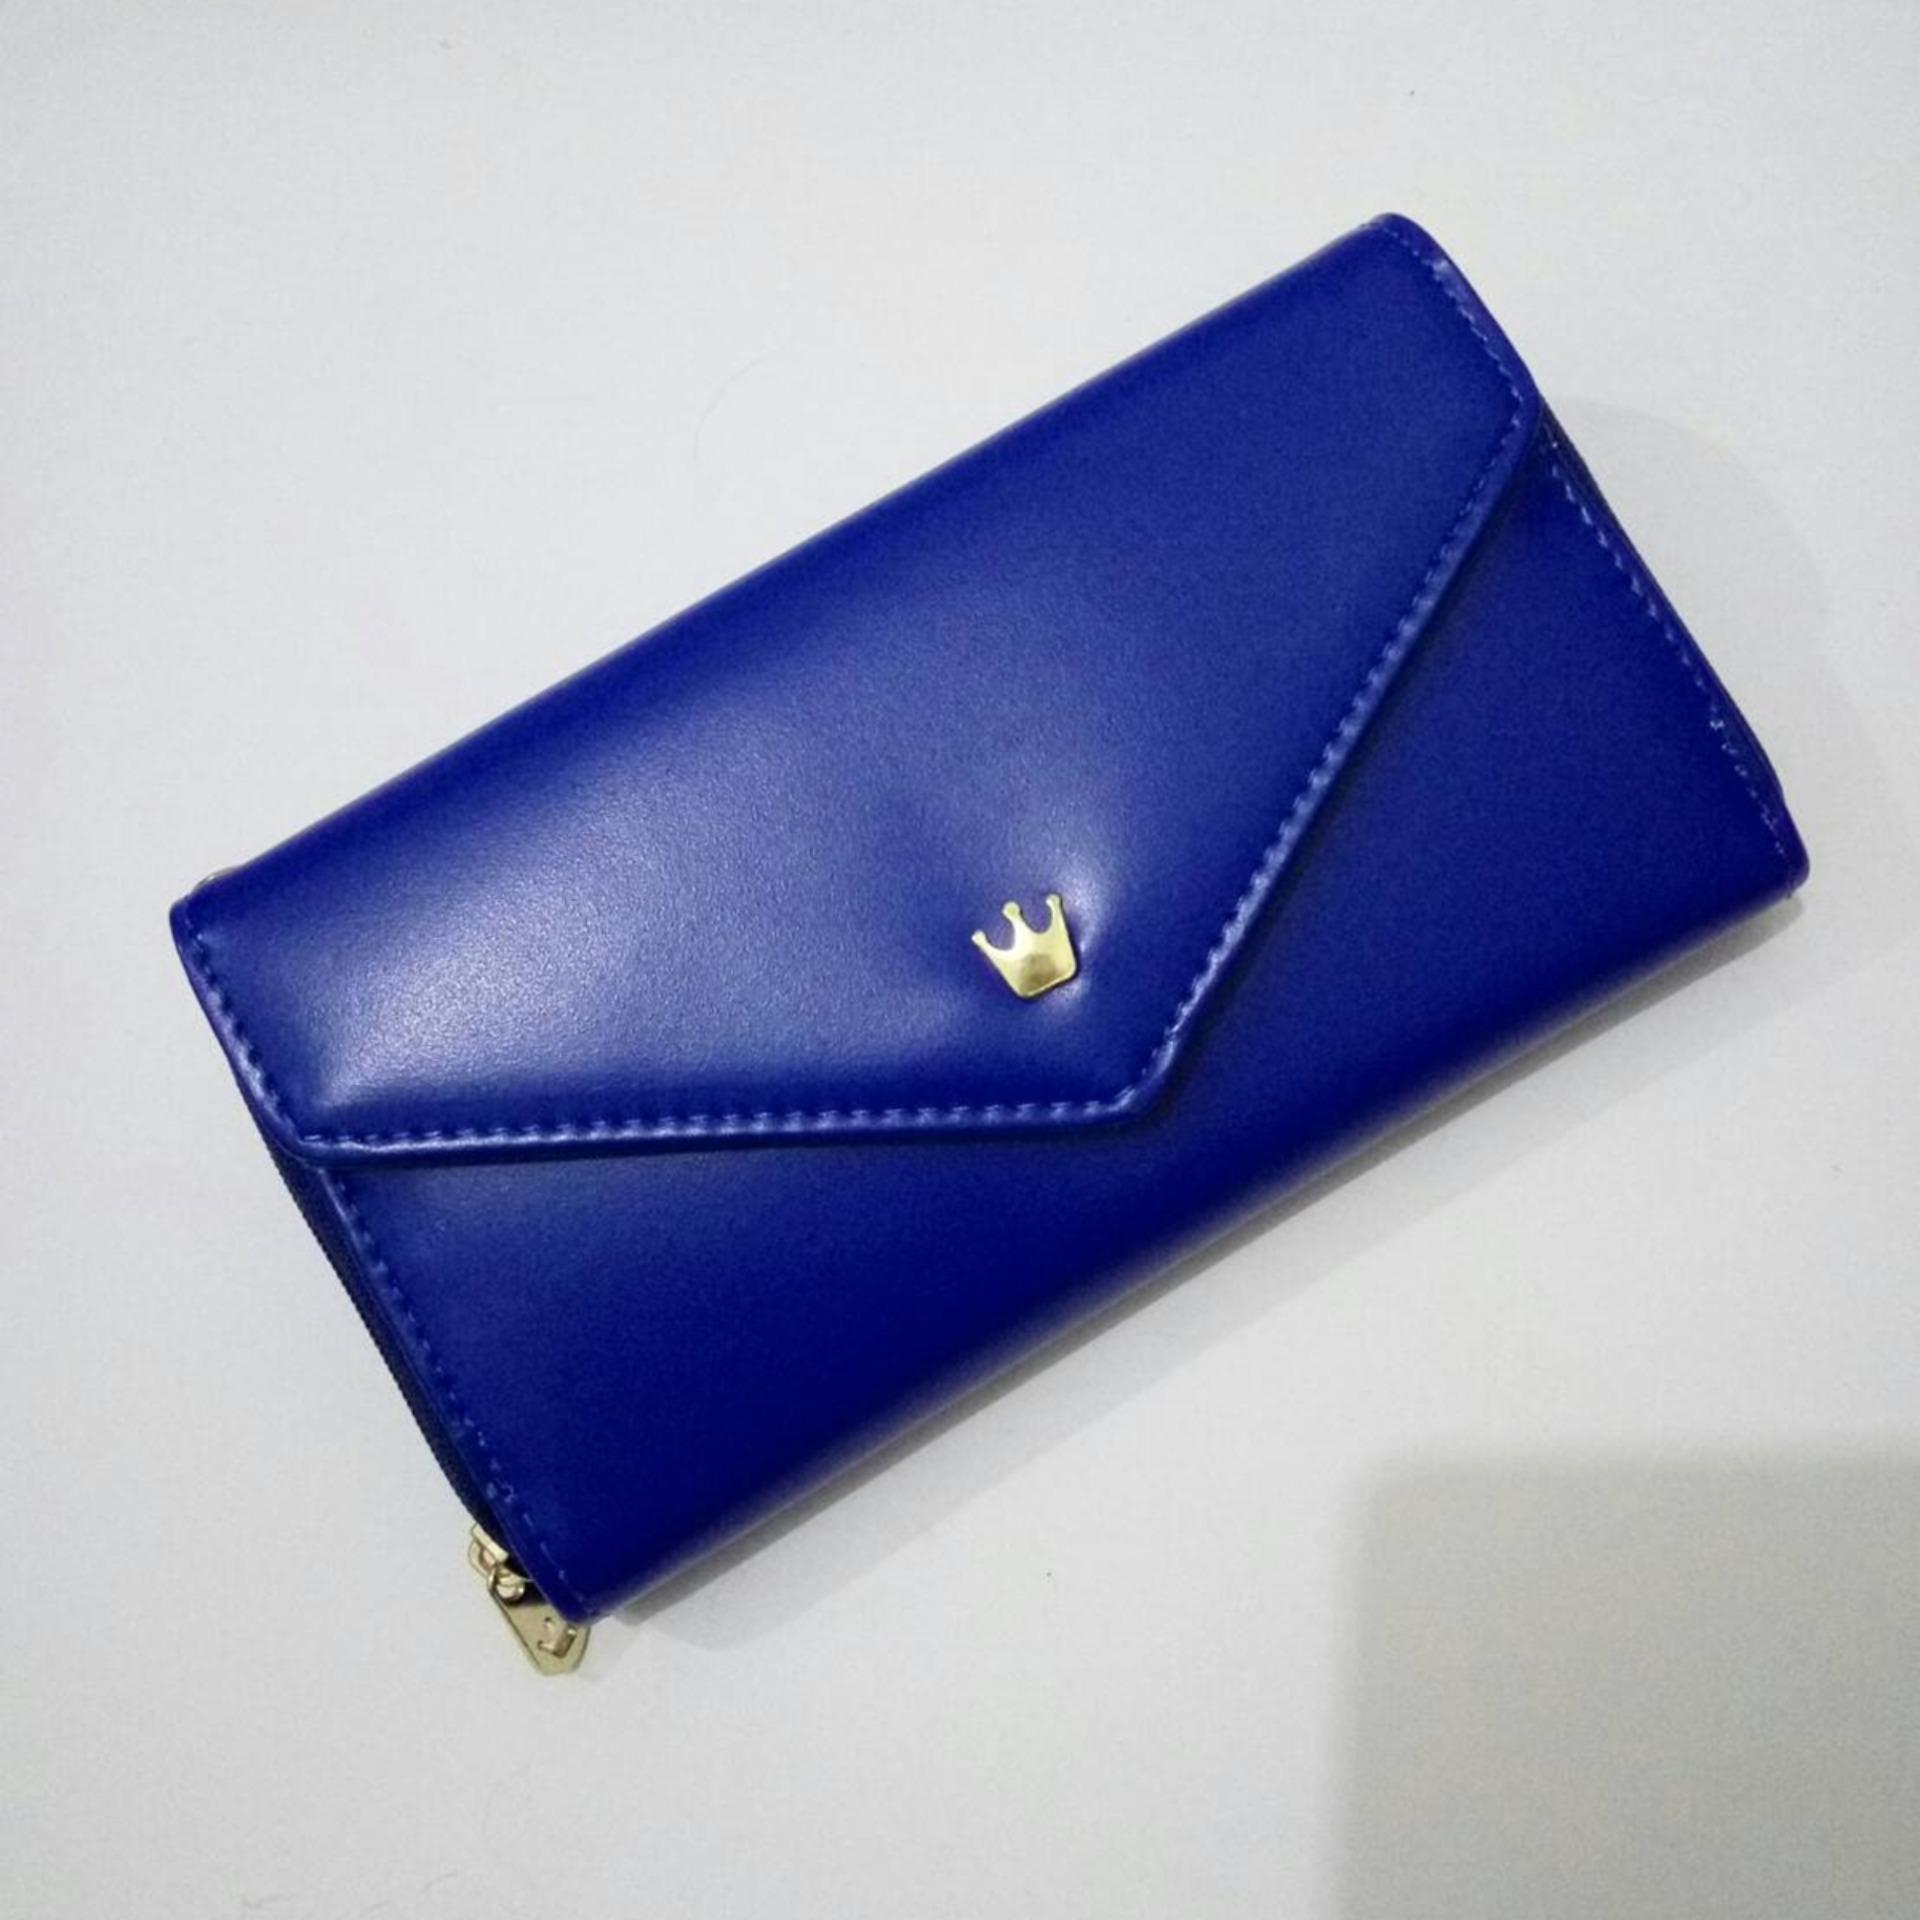 Harga Jims Honey Dompet Fashion Queenie Wallet Navy Terbaru